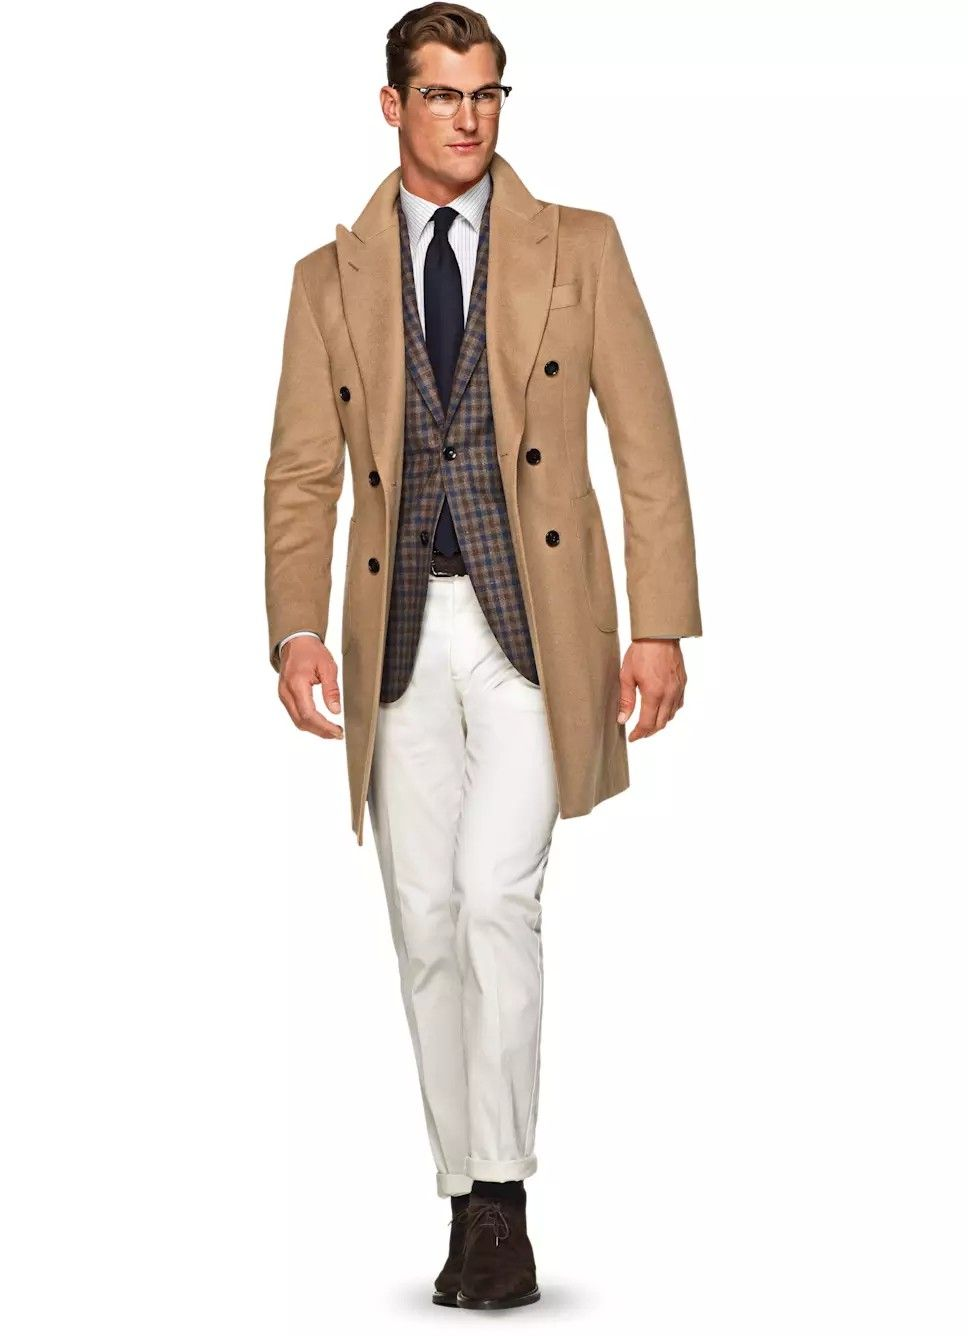 Suitsupply camel doublebreasted overcoat Moda Maschile 9a8070ce623